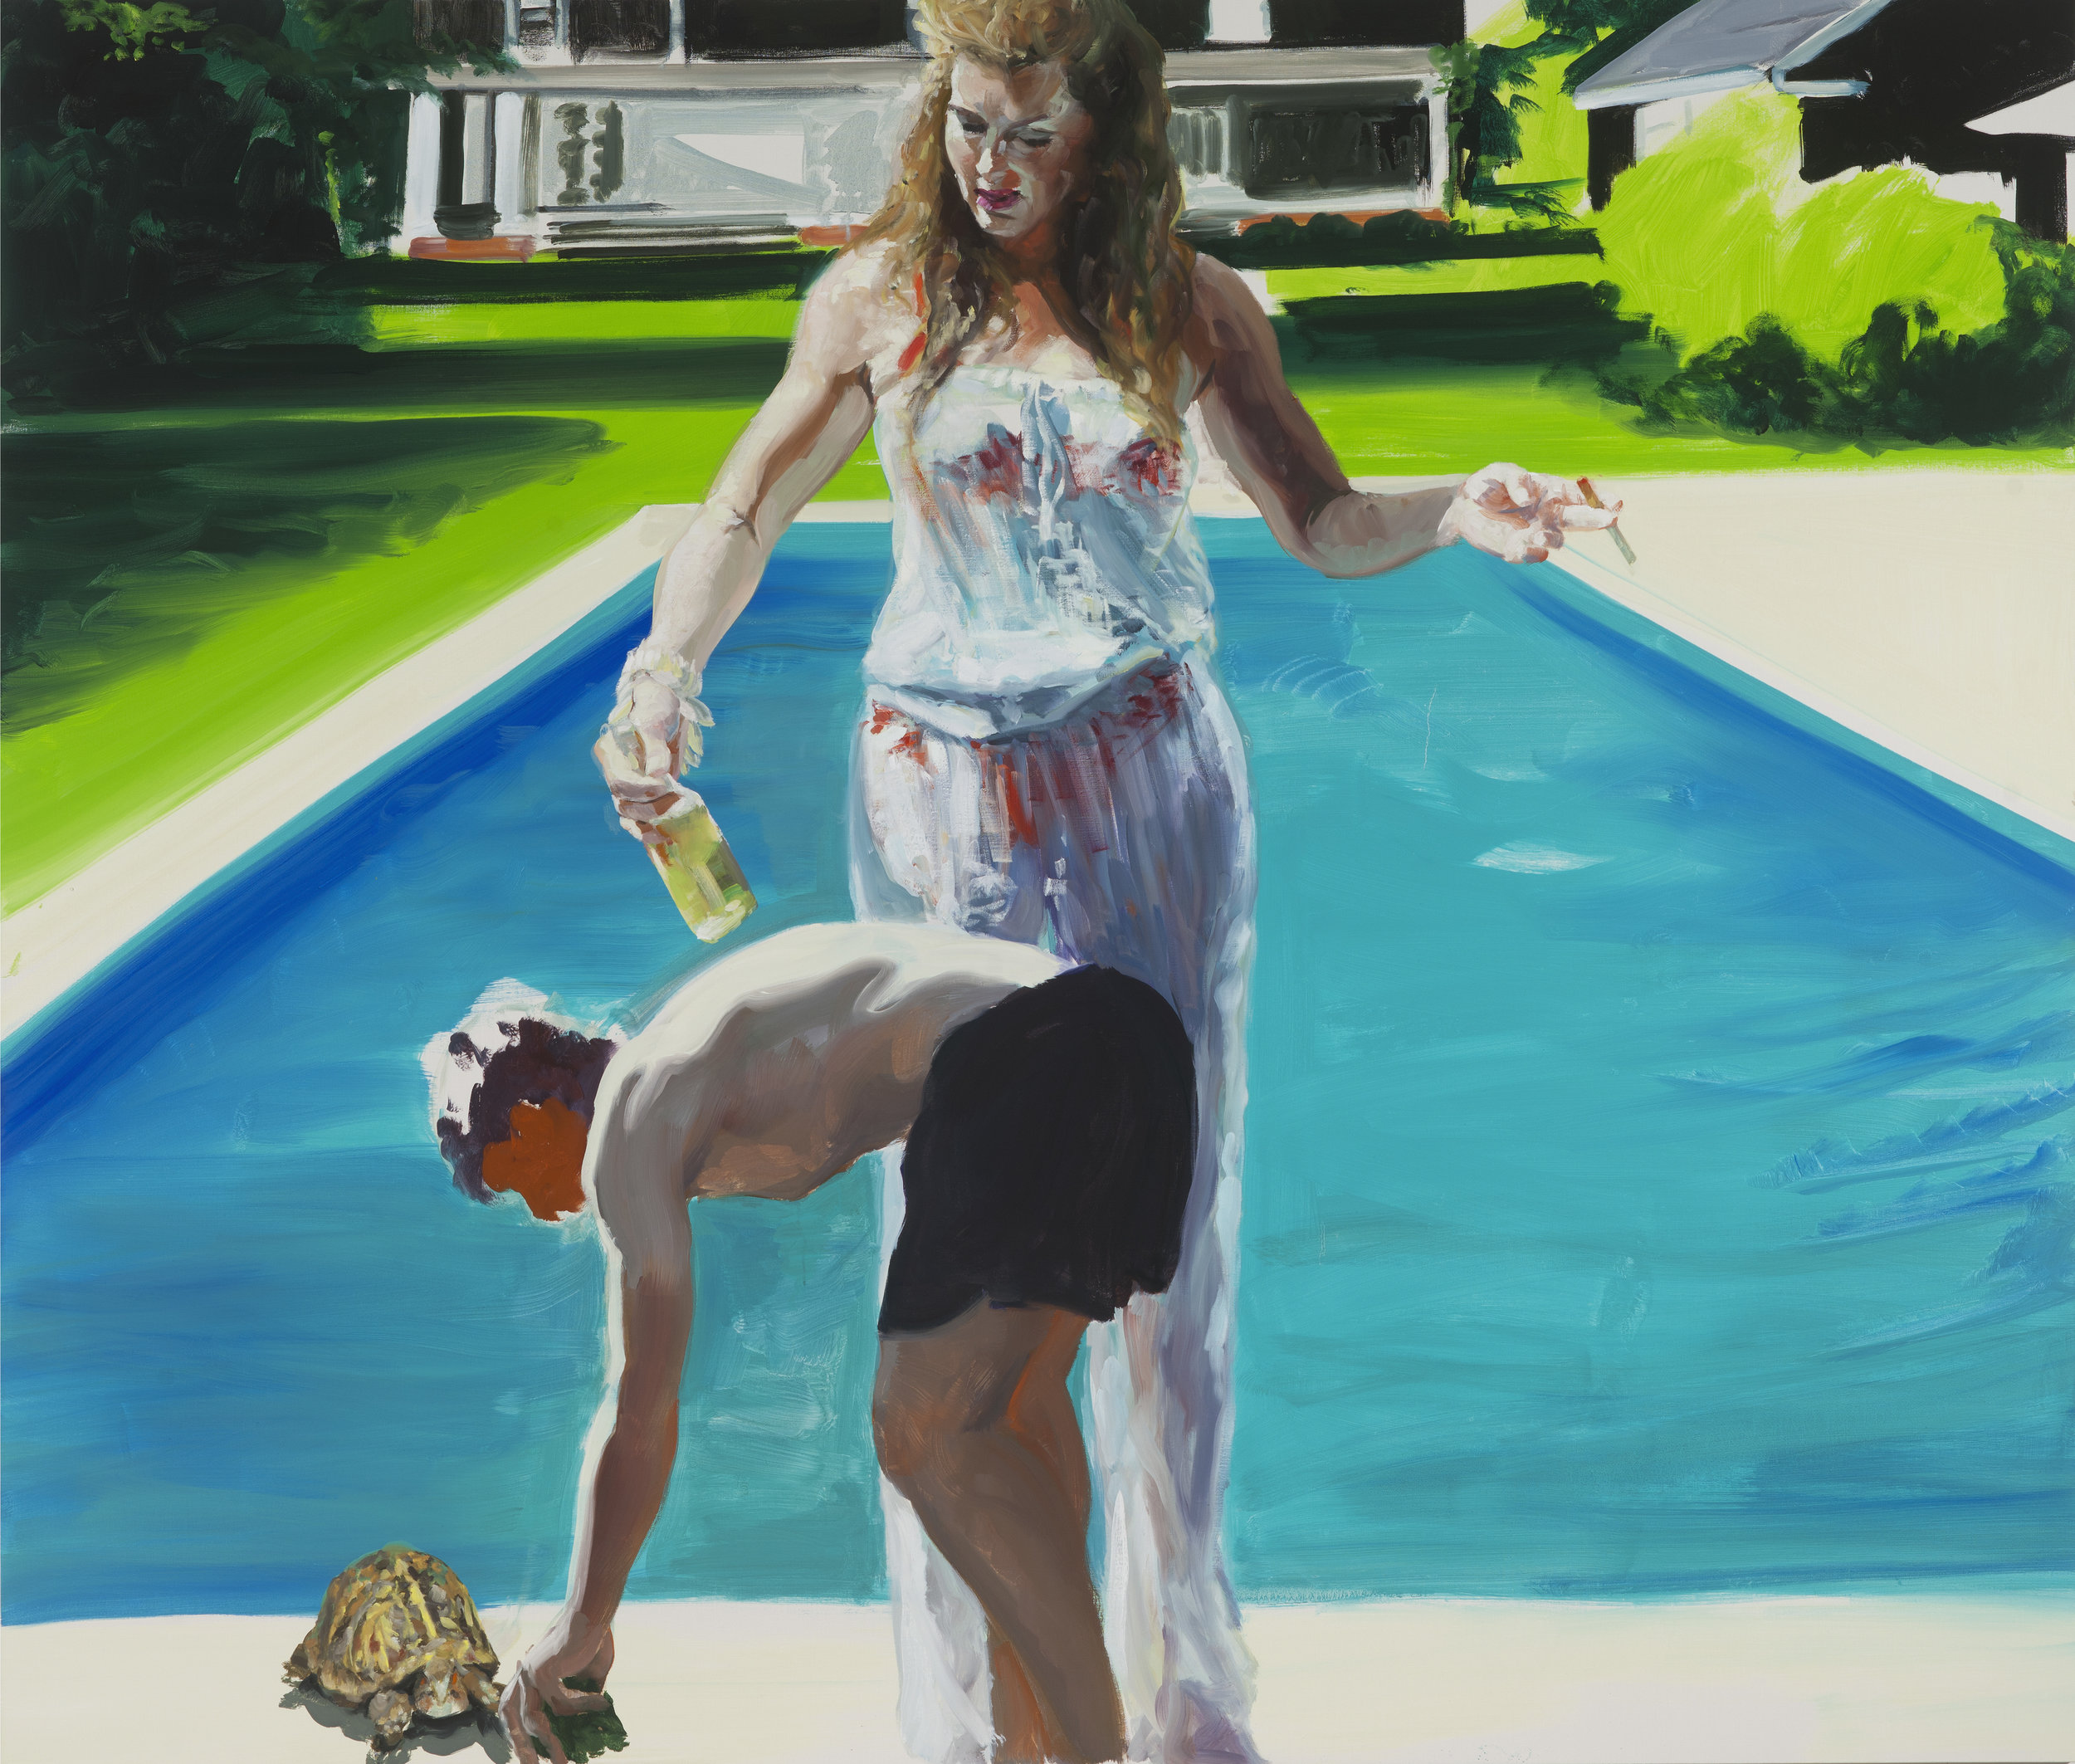 Feeding the Turtle, 2016. Oil on Linen. 66 x 78 inches.